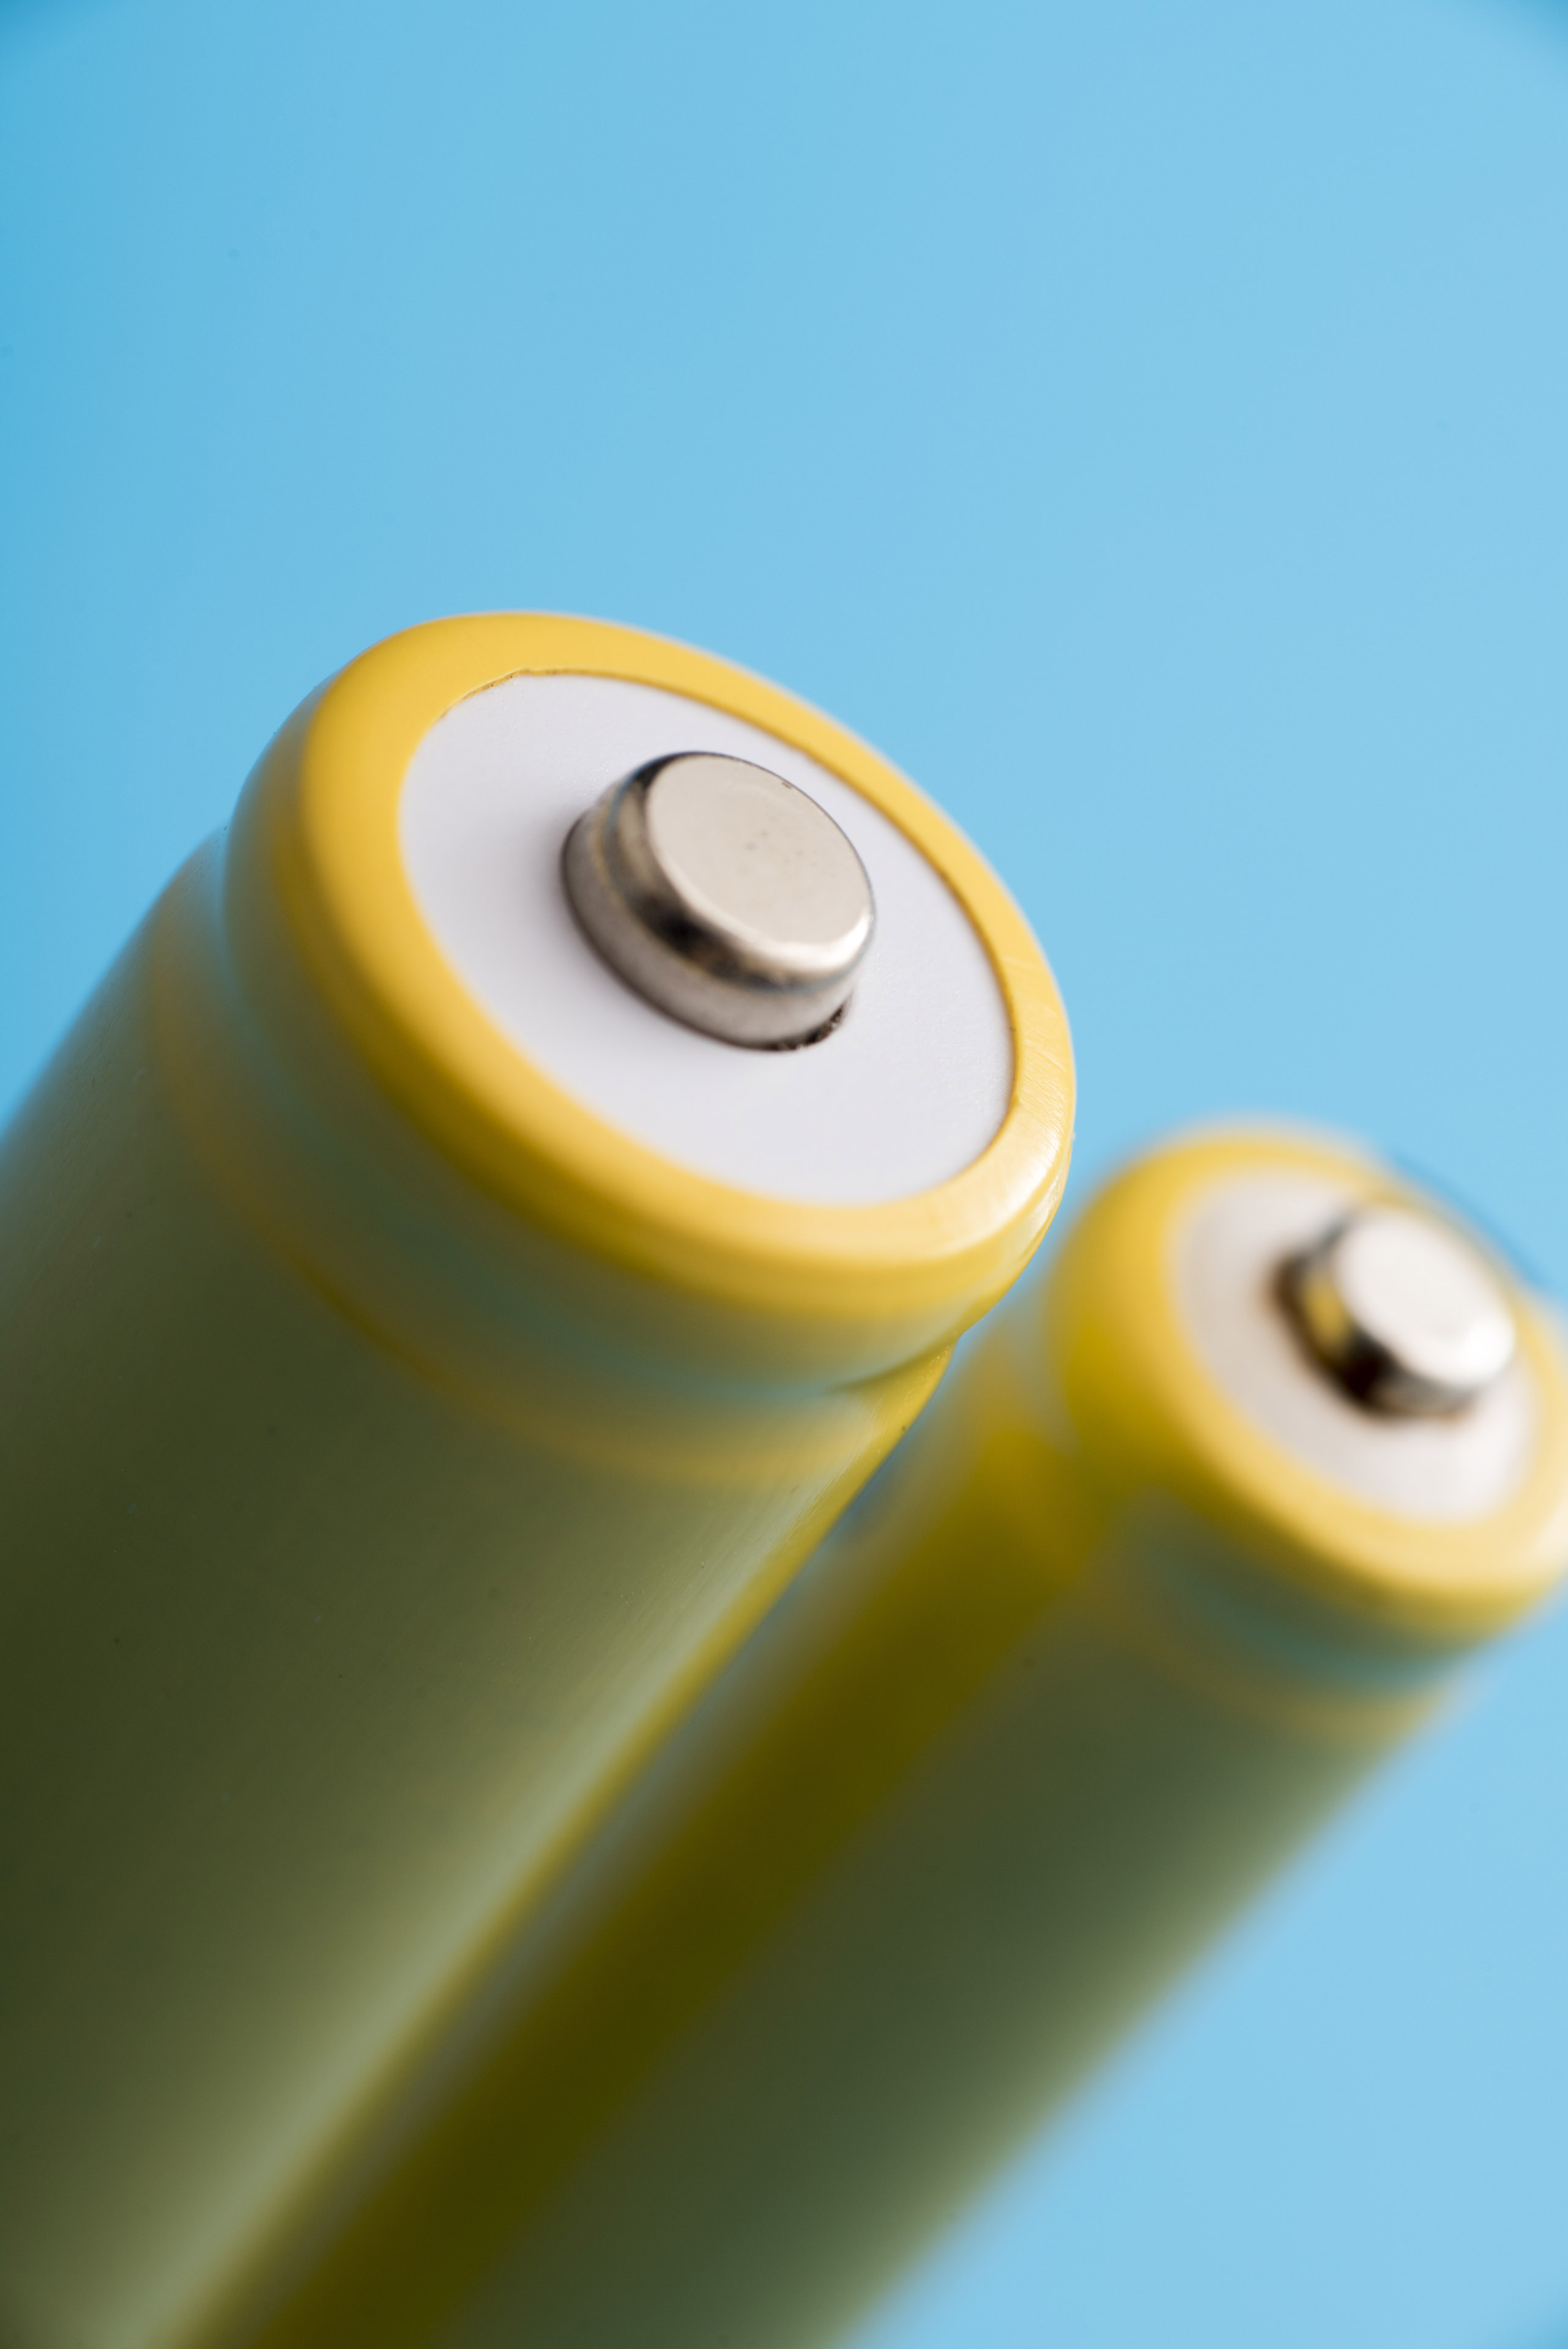 Close up view of the positive terminal on a rechargeable battery over a blue background in a power and energy concept